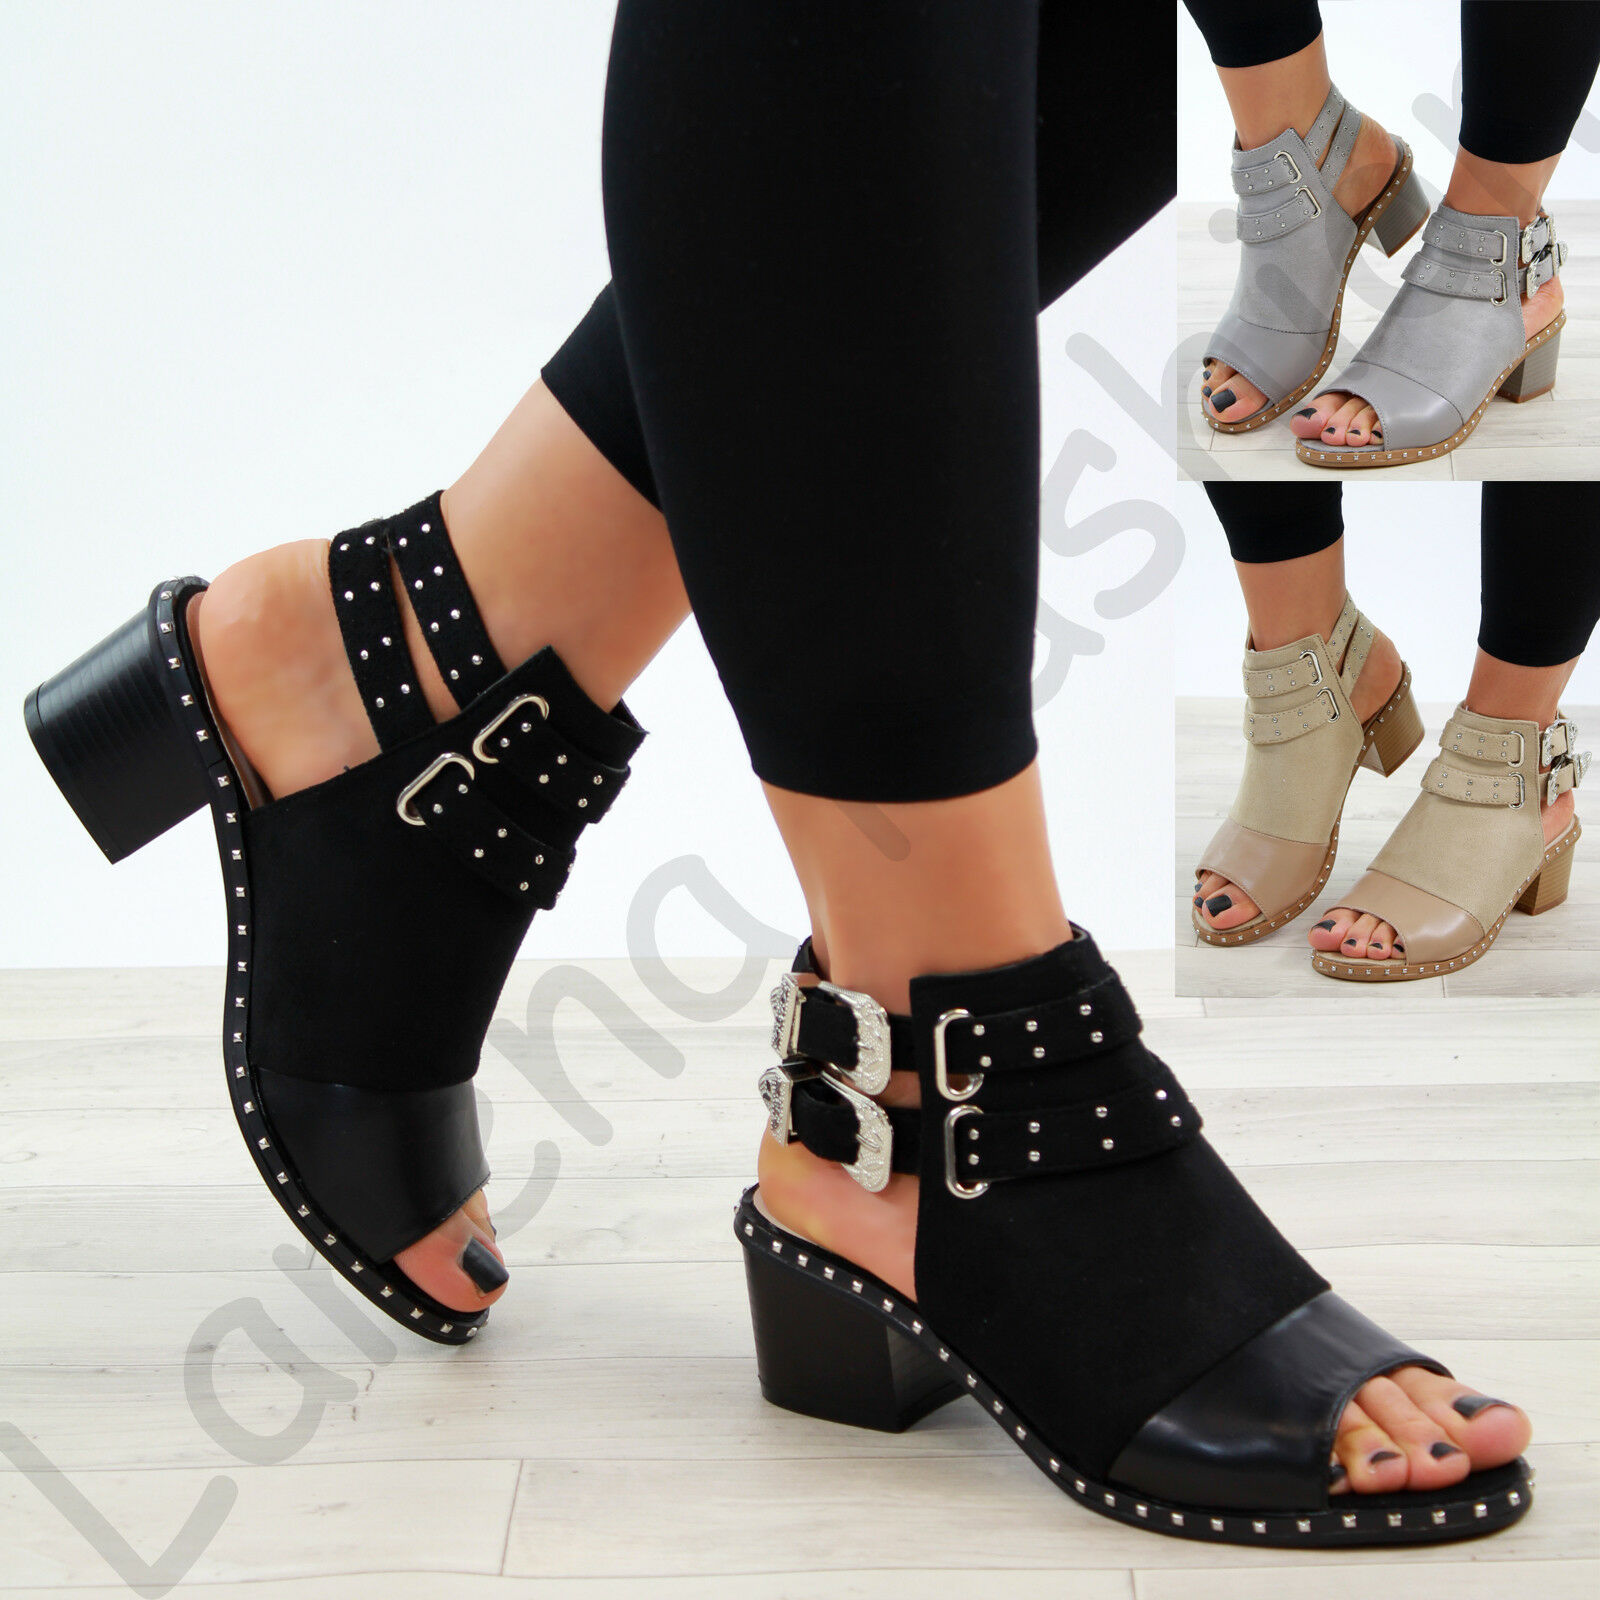 Man's/Woman's New Womens Mid Block Toe Heel Sandals Studs Peep Toe Block Buckle Ankle Strap Shoes Sizes Ideal gift for all occasions Skilled manufacturing Preferred boutique HB626 72ff49